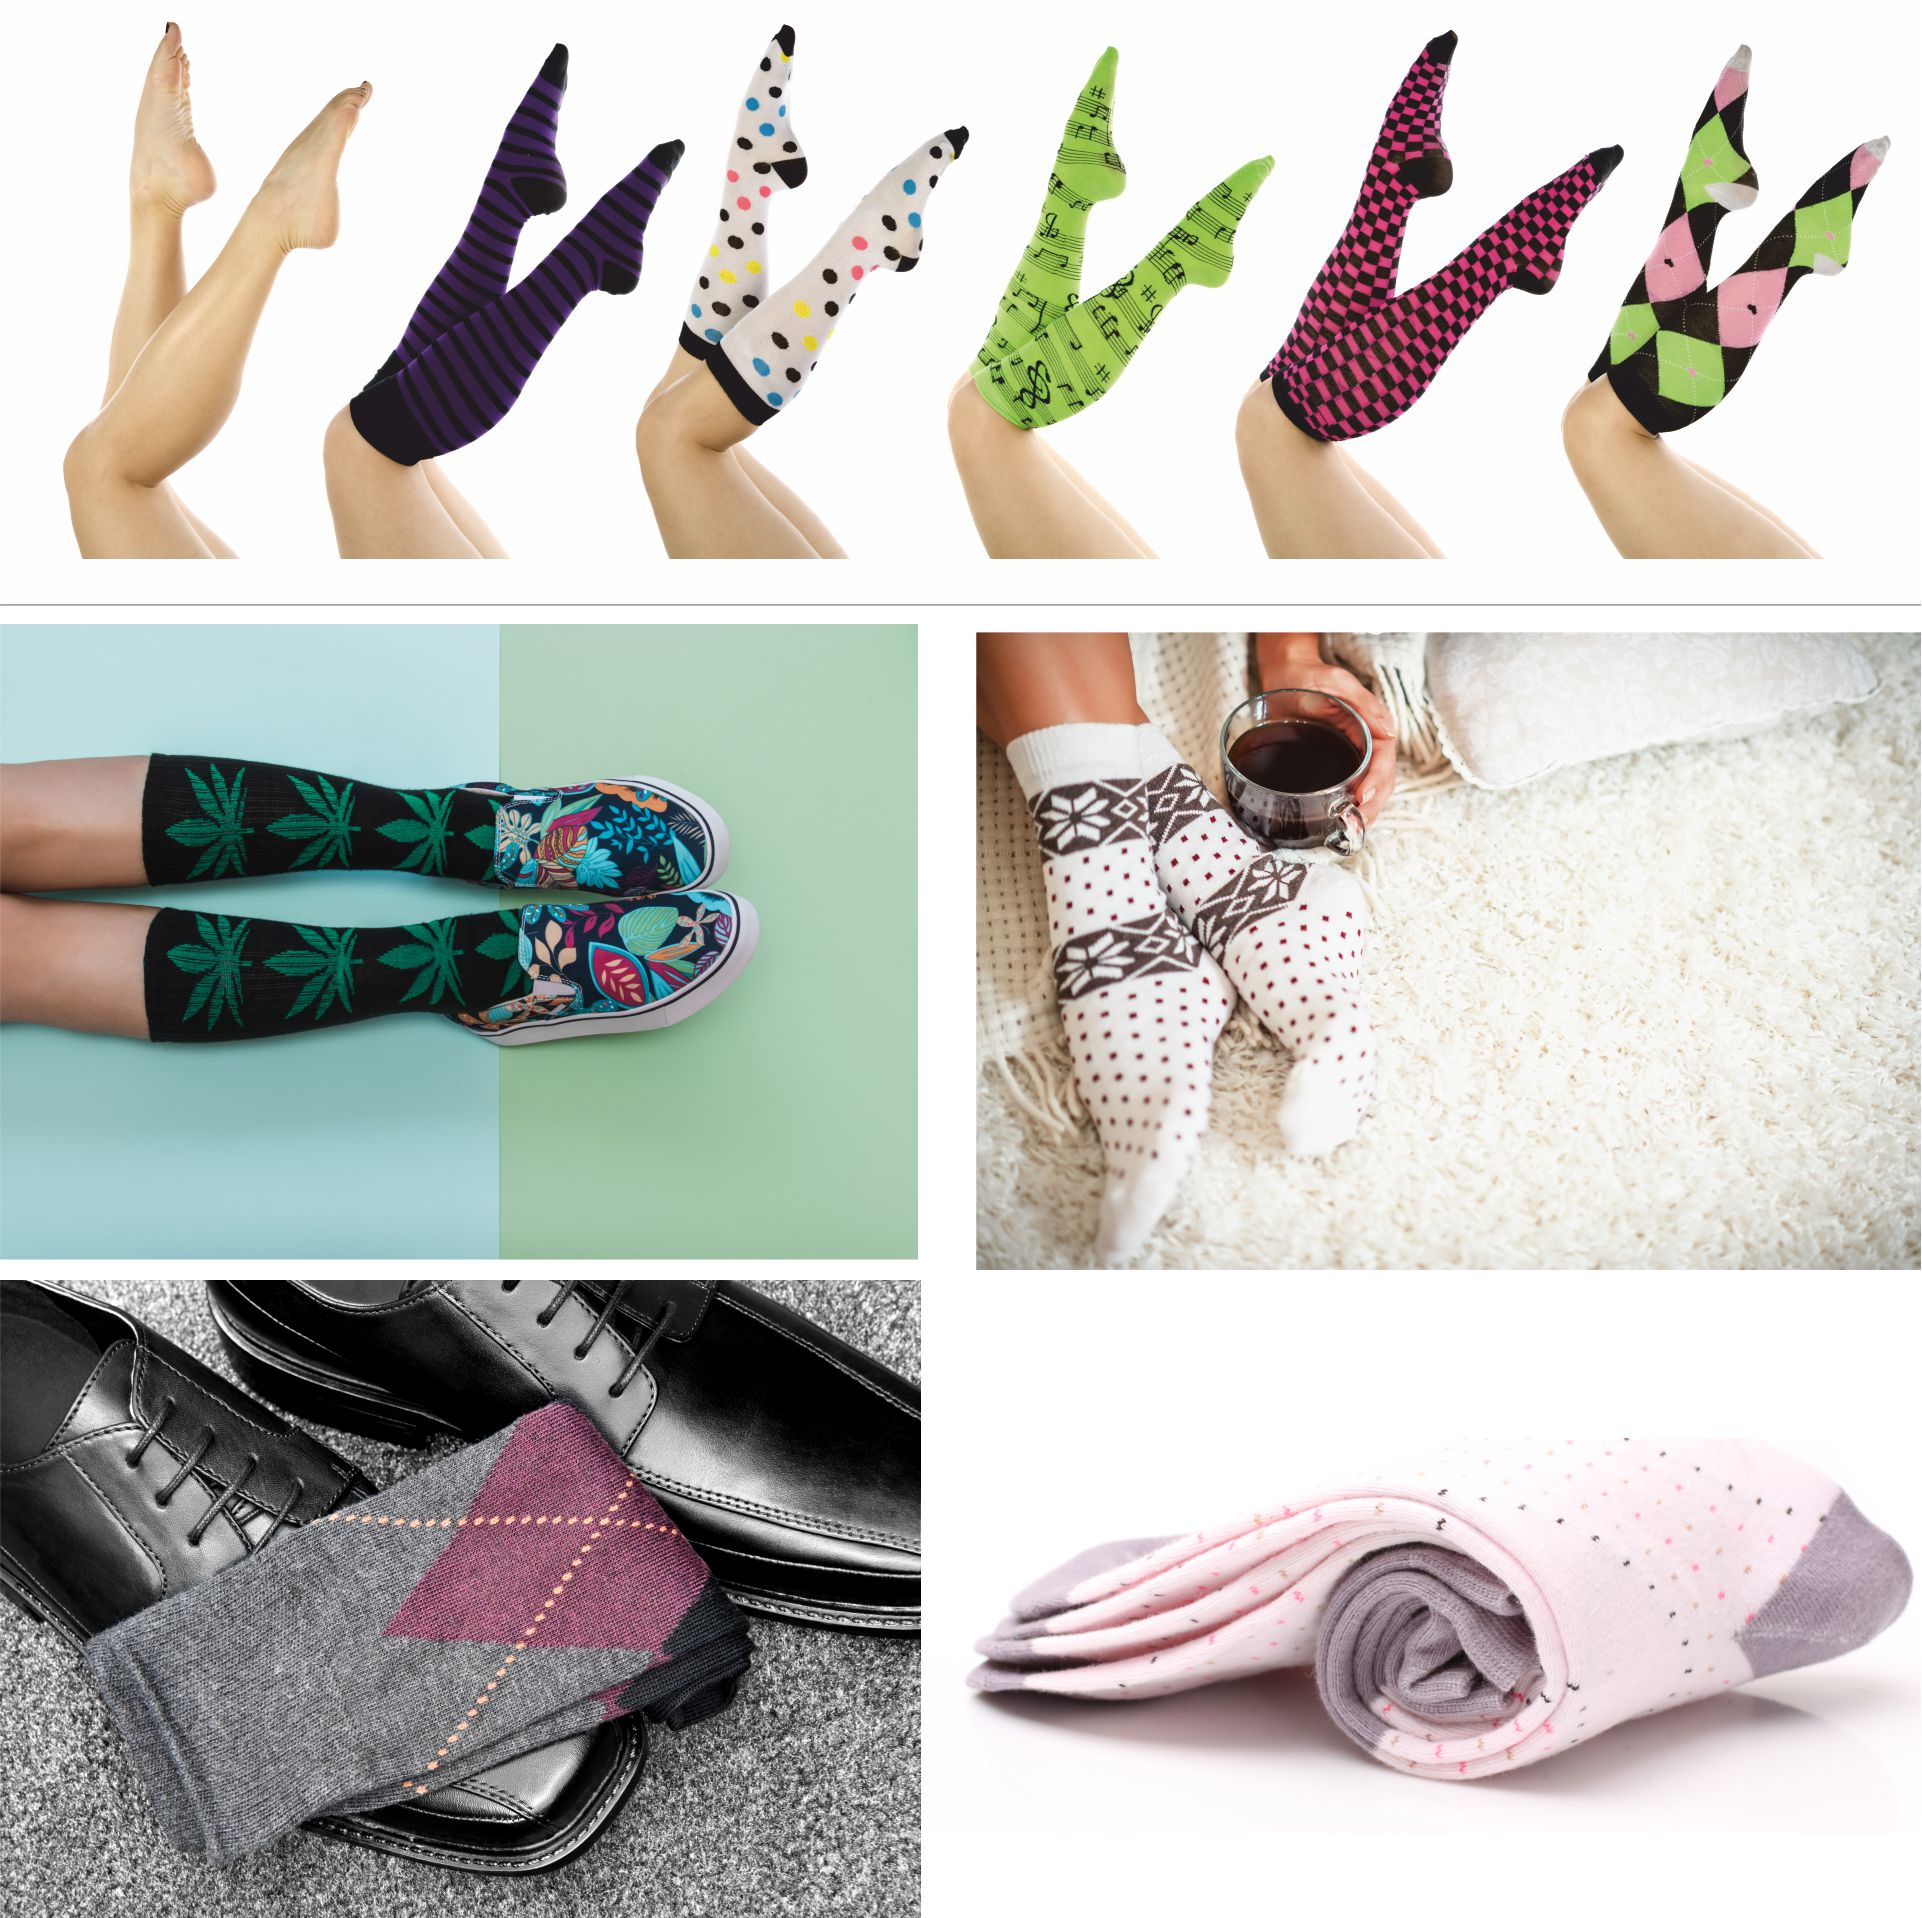 Knitted socks personalized with your logo